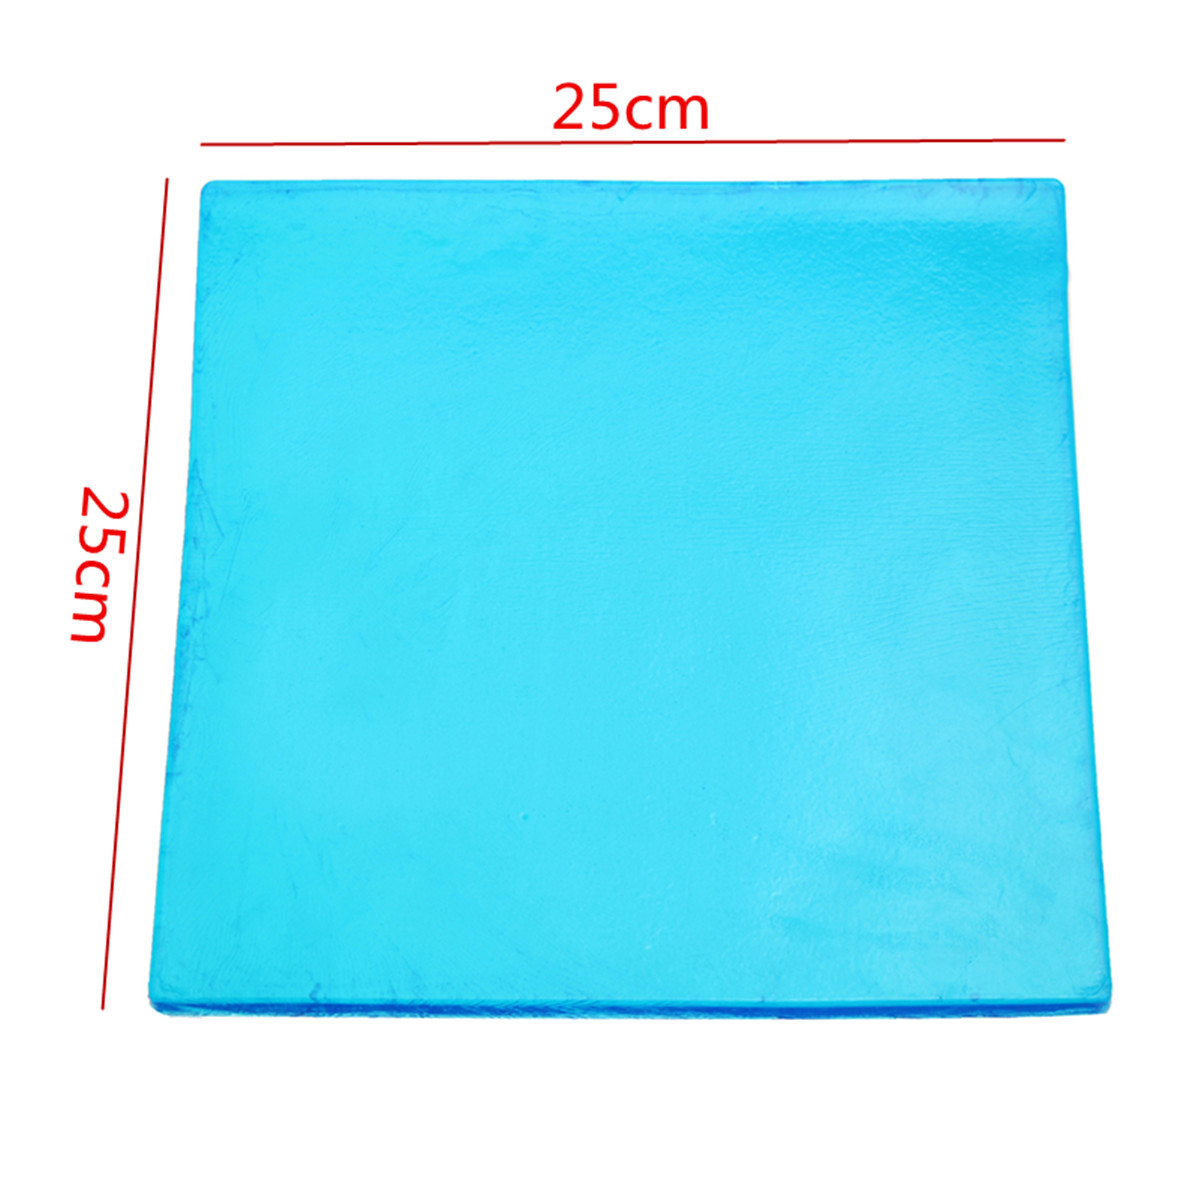 New DIY Modified 1cm Thickness Damping Silicone Gel Pad Motorcycle Seat Cushion Comfortable Mat shock absorption Mats 25x25cm